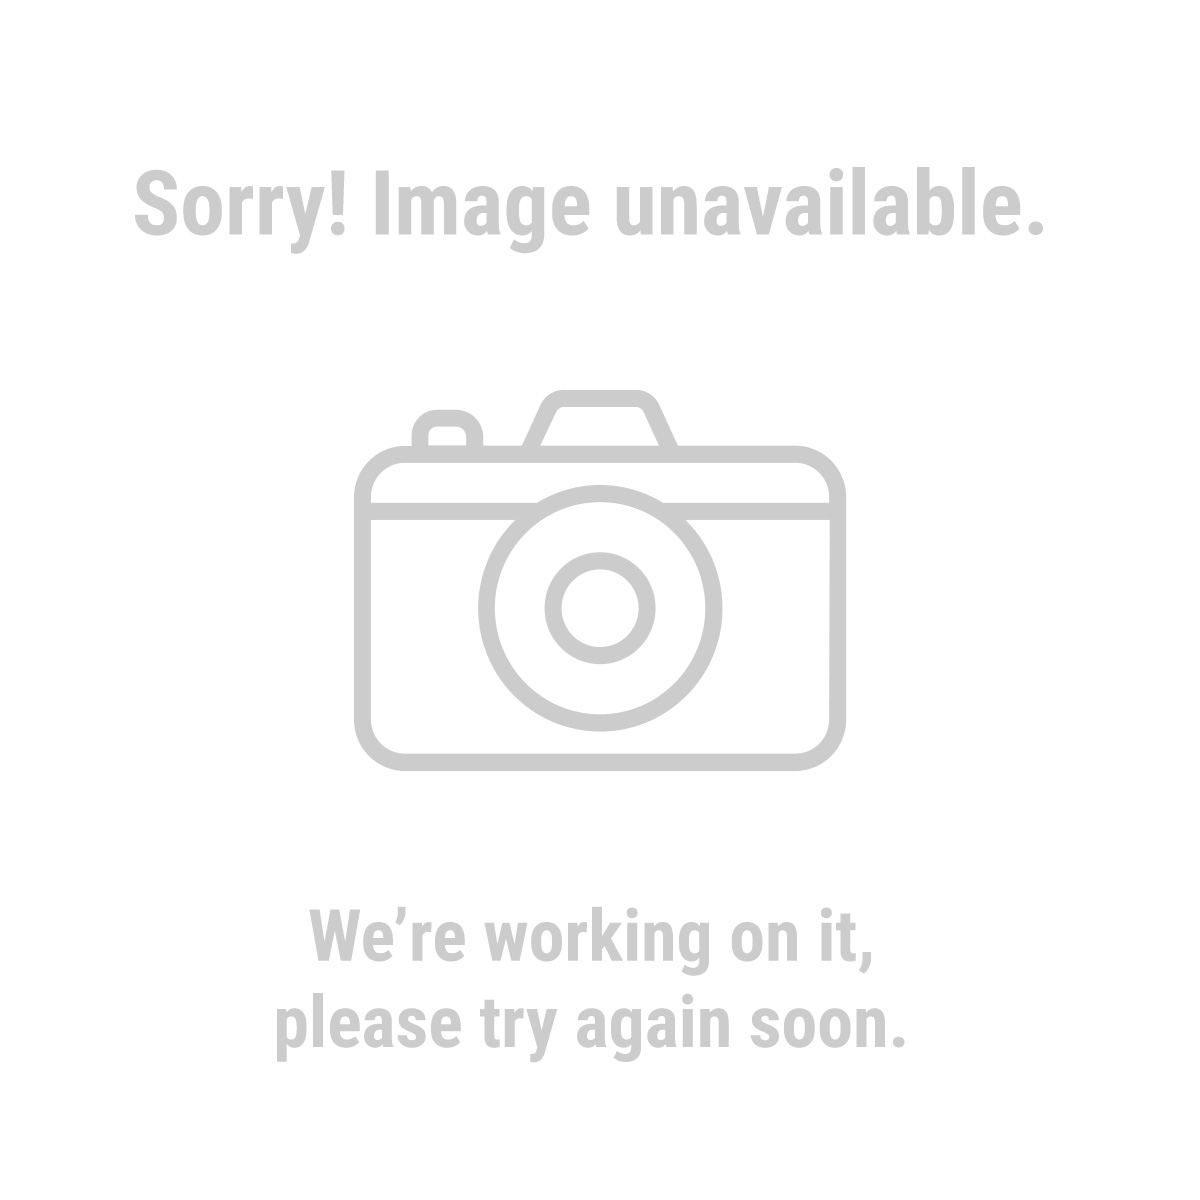 Haul-Master® 66260 Hitch Mount Vise Plate